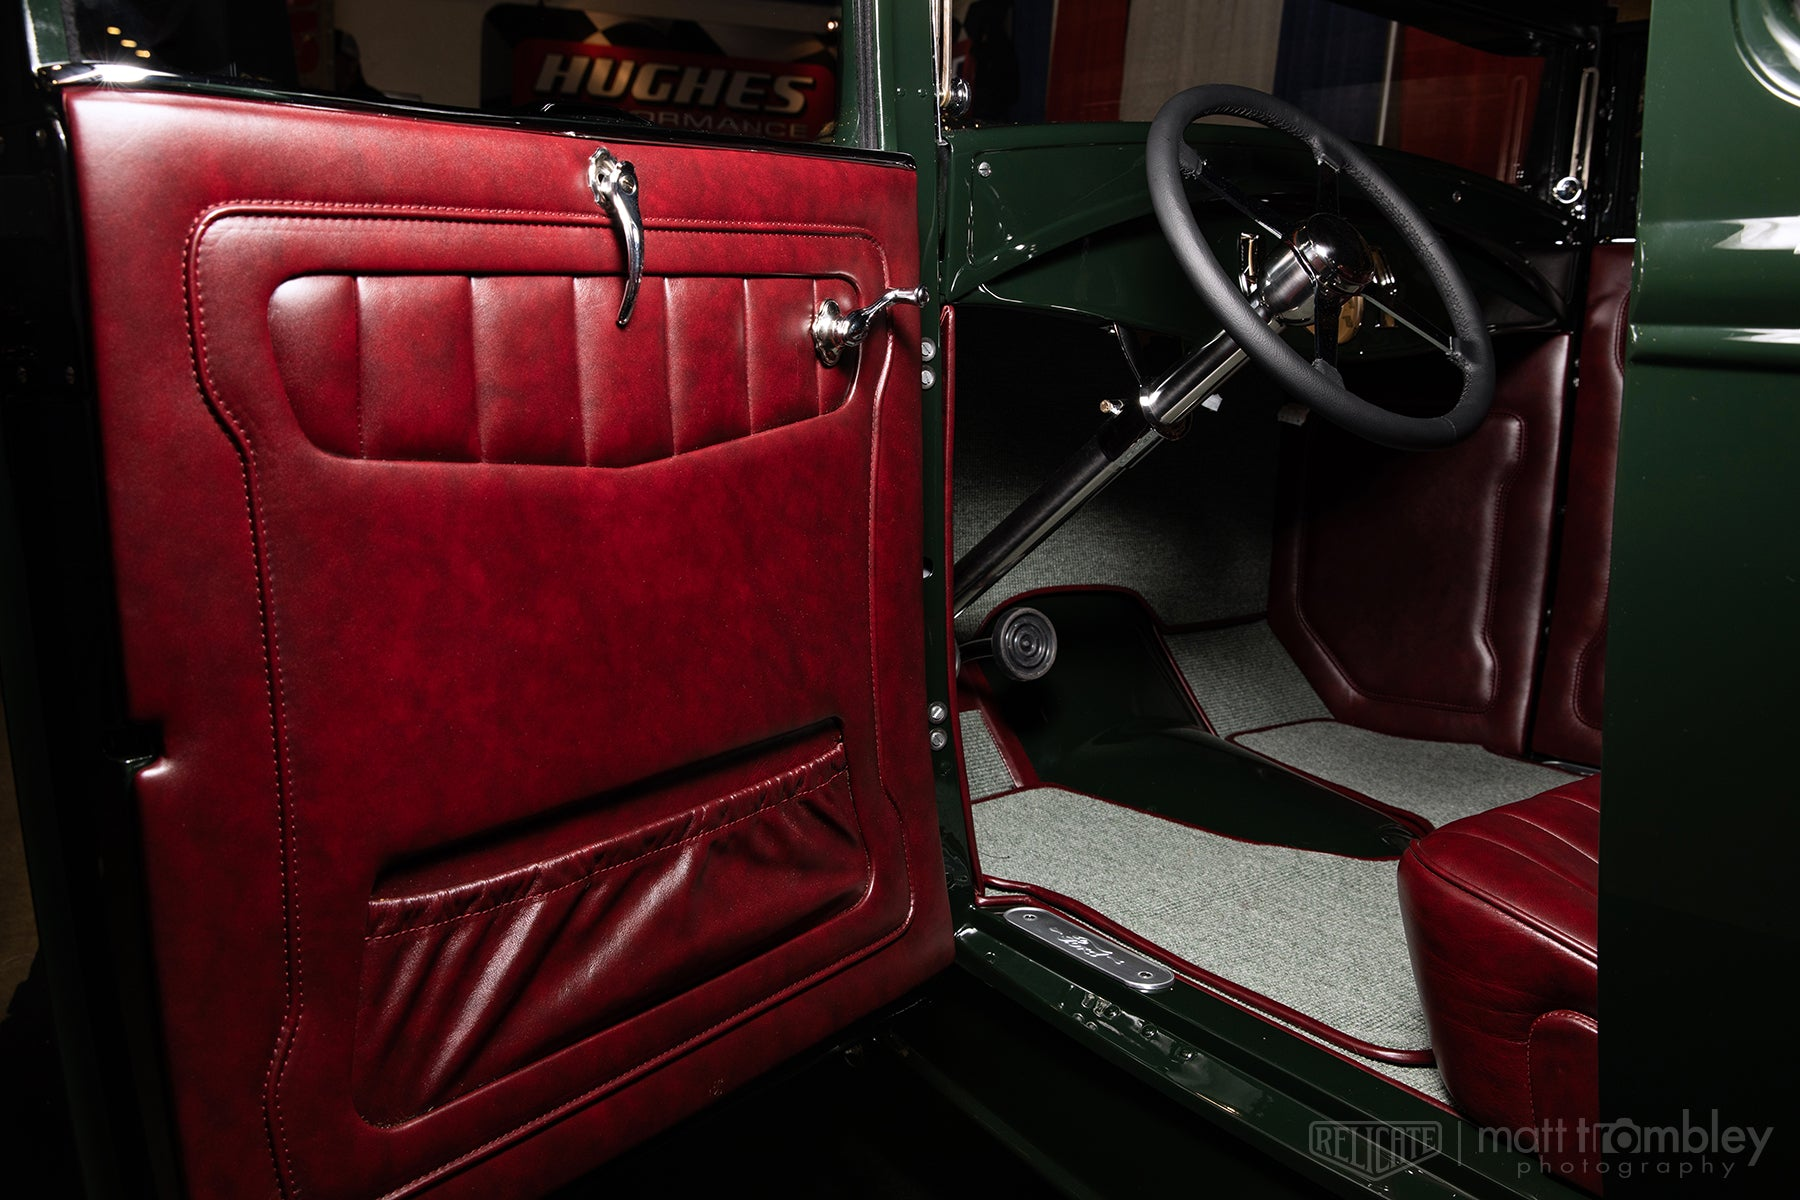 Hilton Hot Rods 1931 Ford Coupe with Relicate Leather Oxblood interior door panel